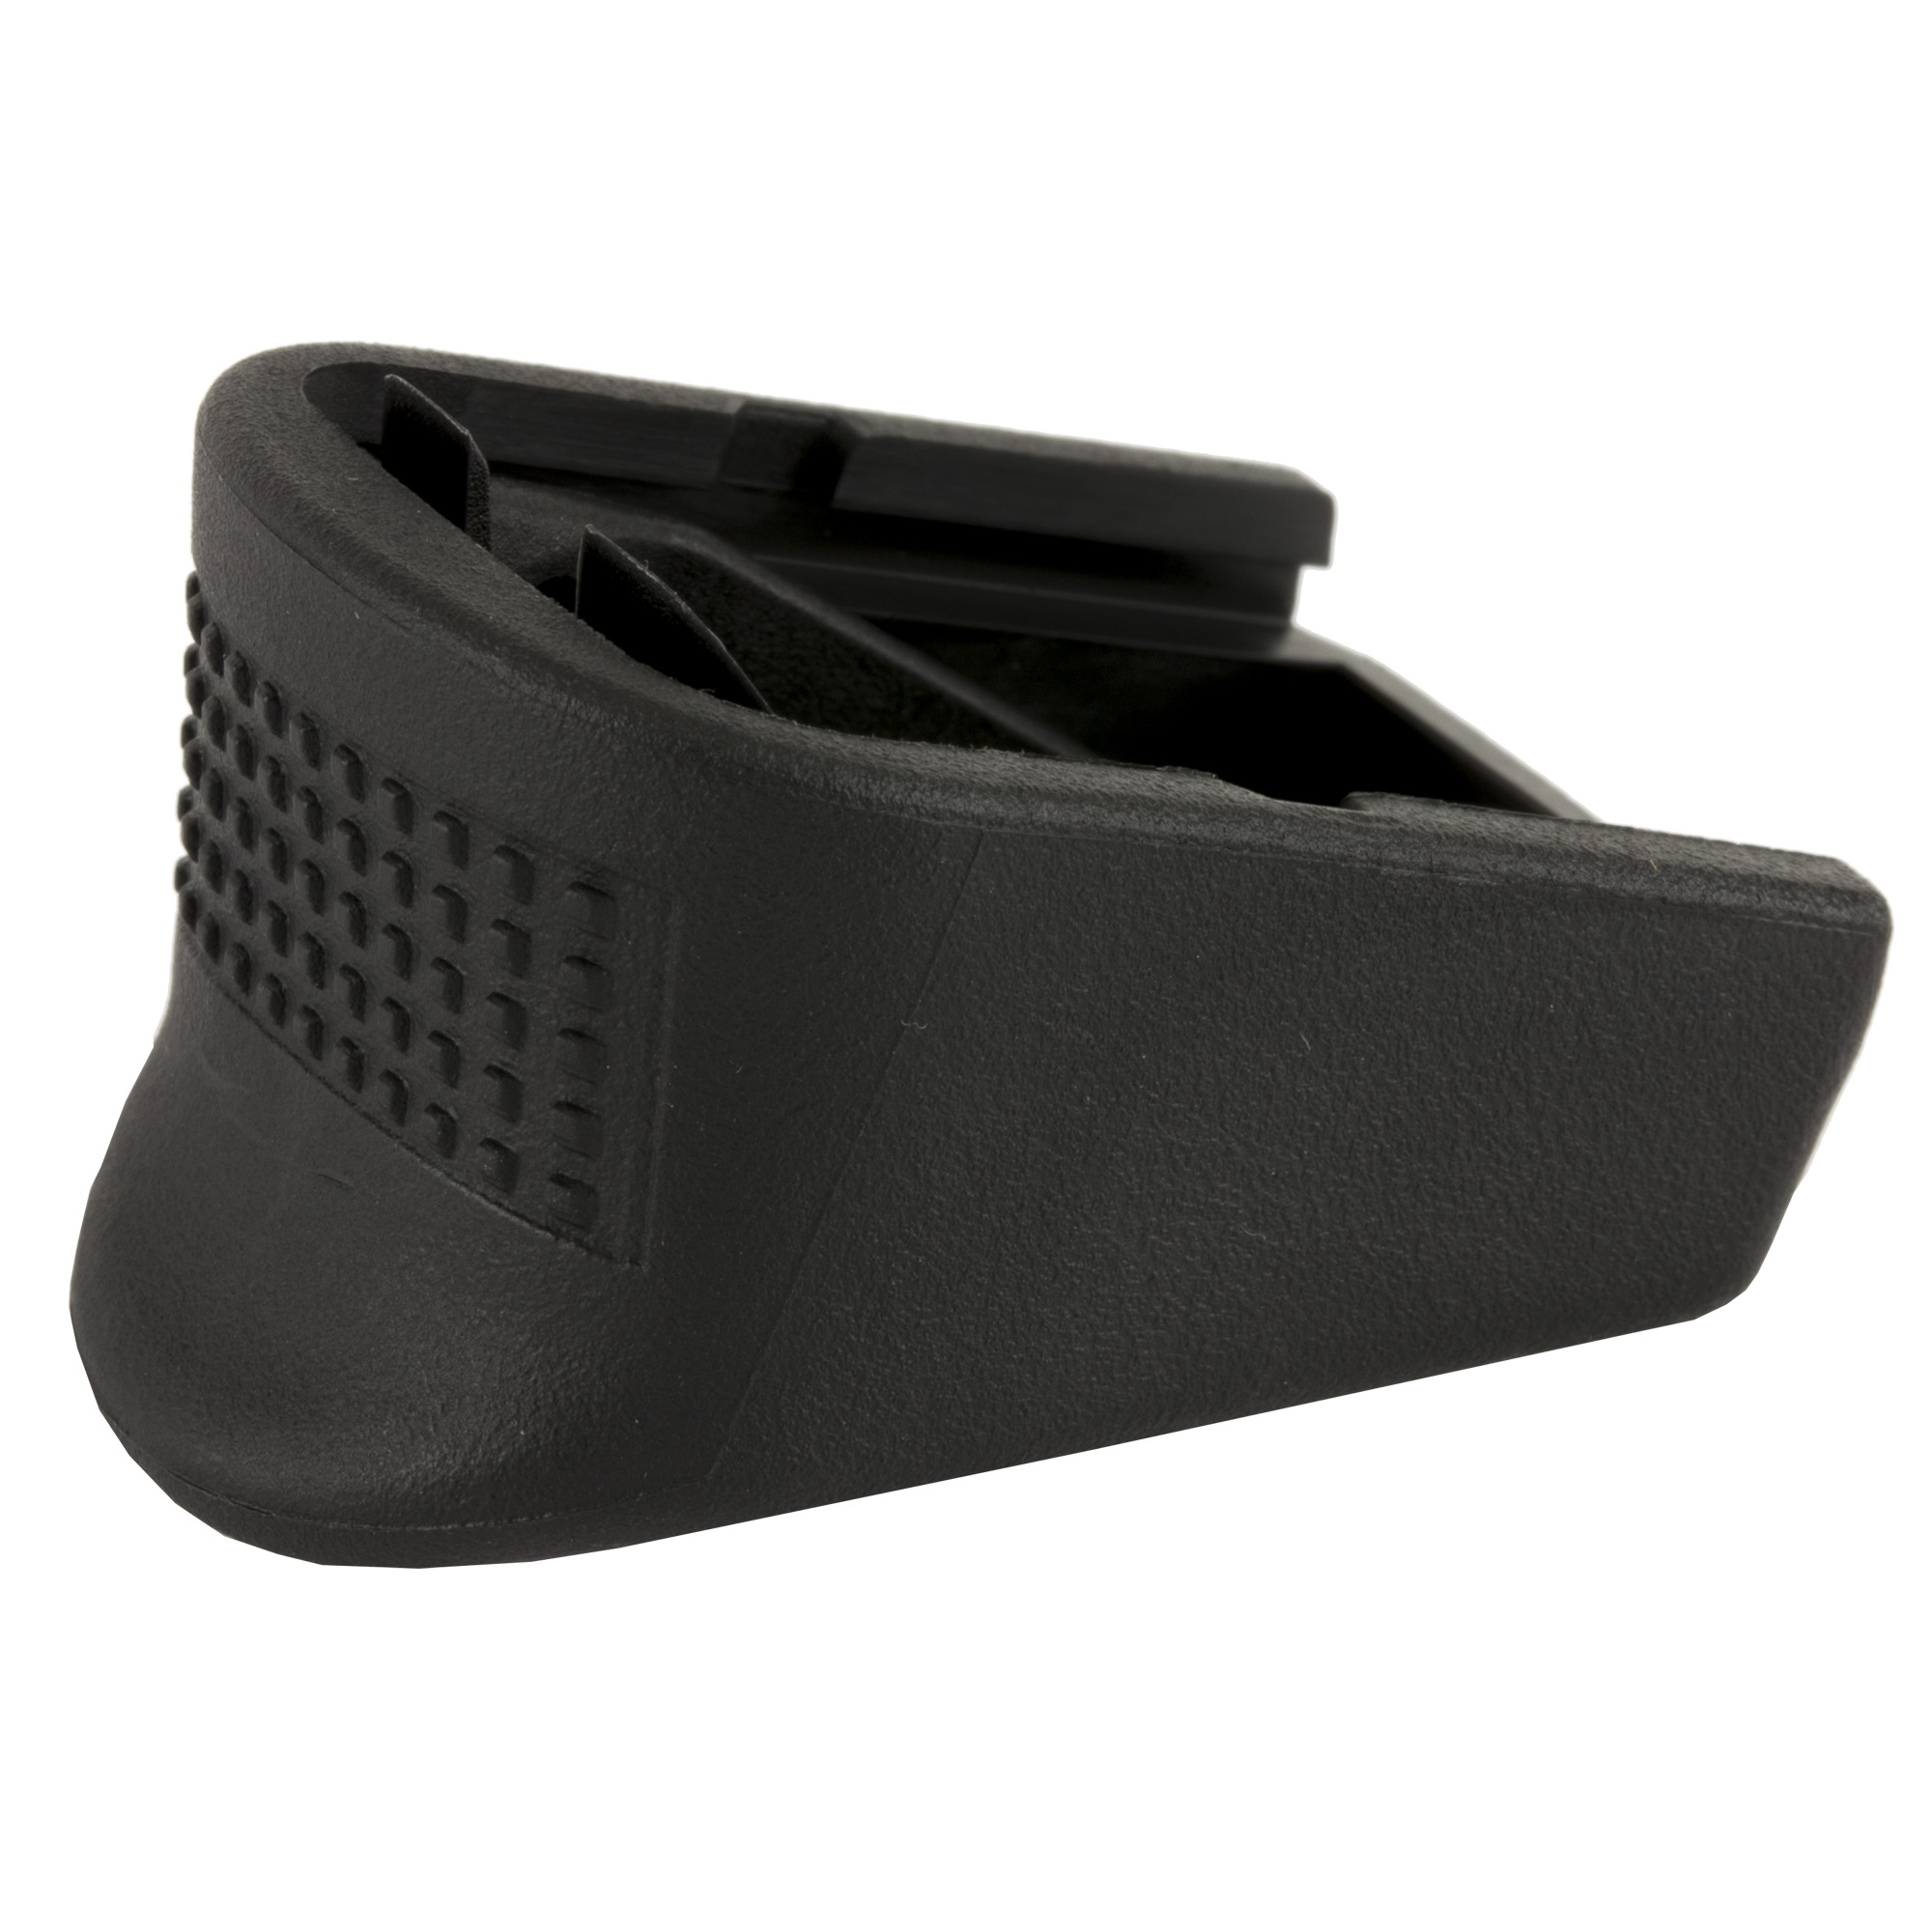 """This extension replaces the magazine floor plate adding two rounds capacity to Glock factory M20""""M21""""M29""""M40 and M41 magazines. This unit is for use on high capacity magazines only"""" it will not work on the 10 round M20 and M21 magazines. Not for use on Glock M30 10 round magazines."""